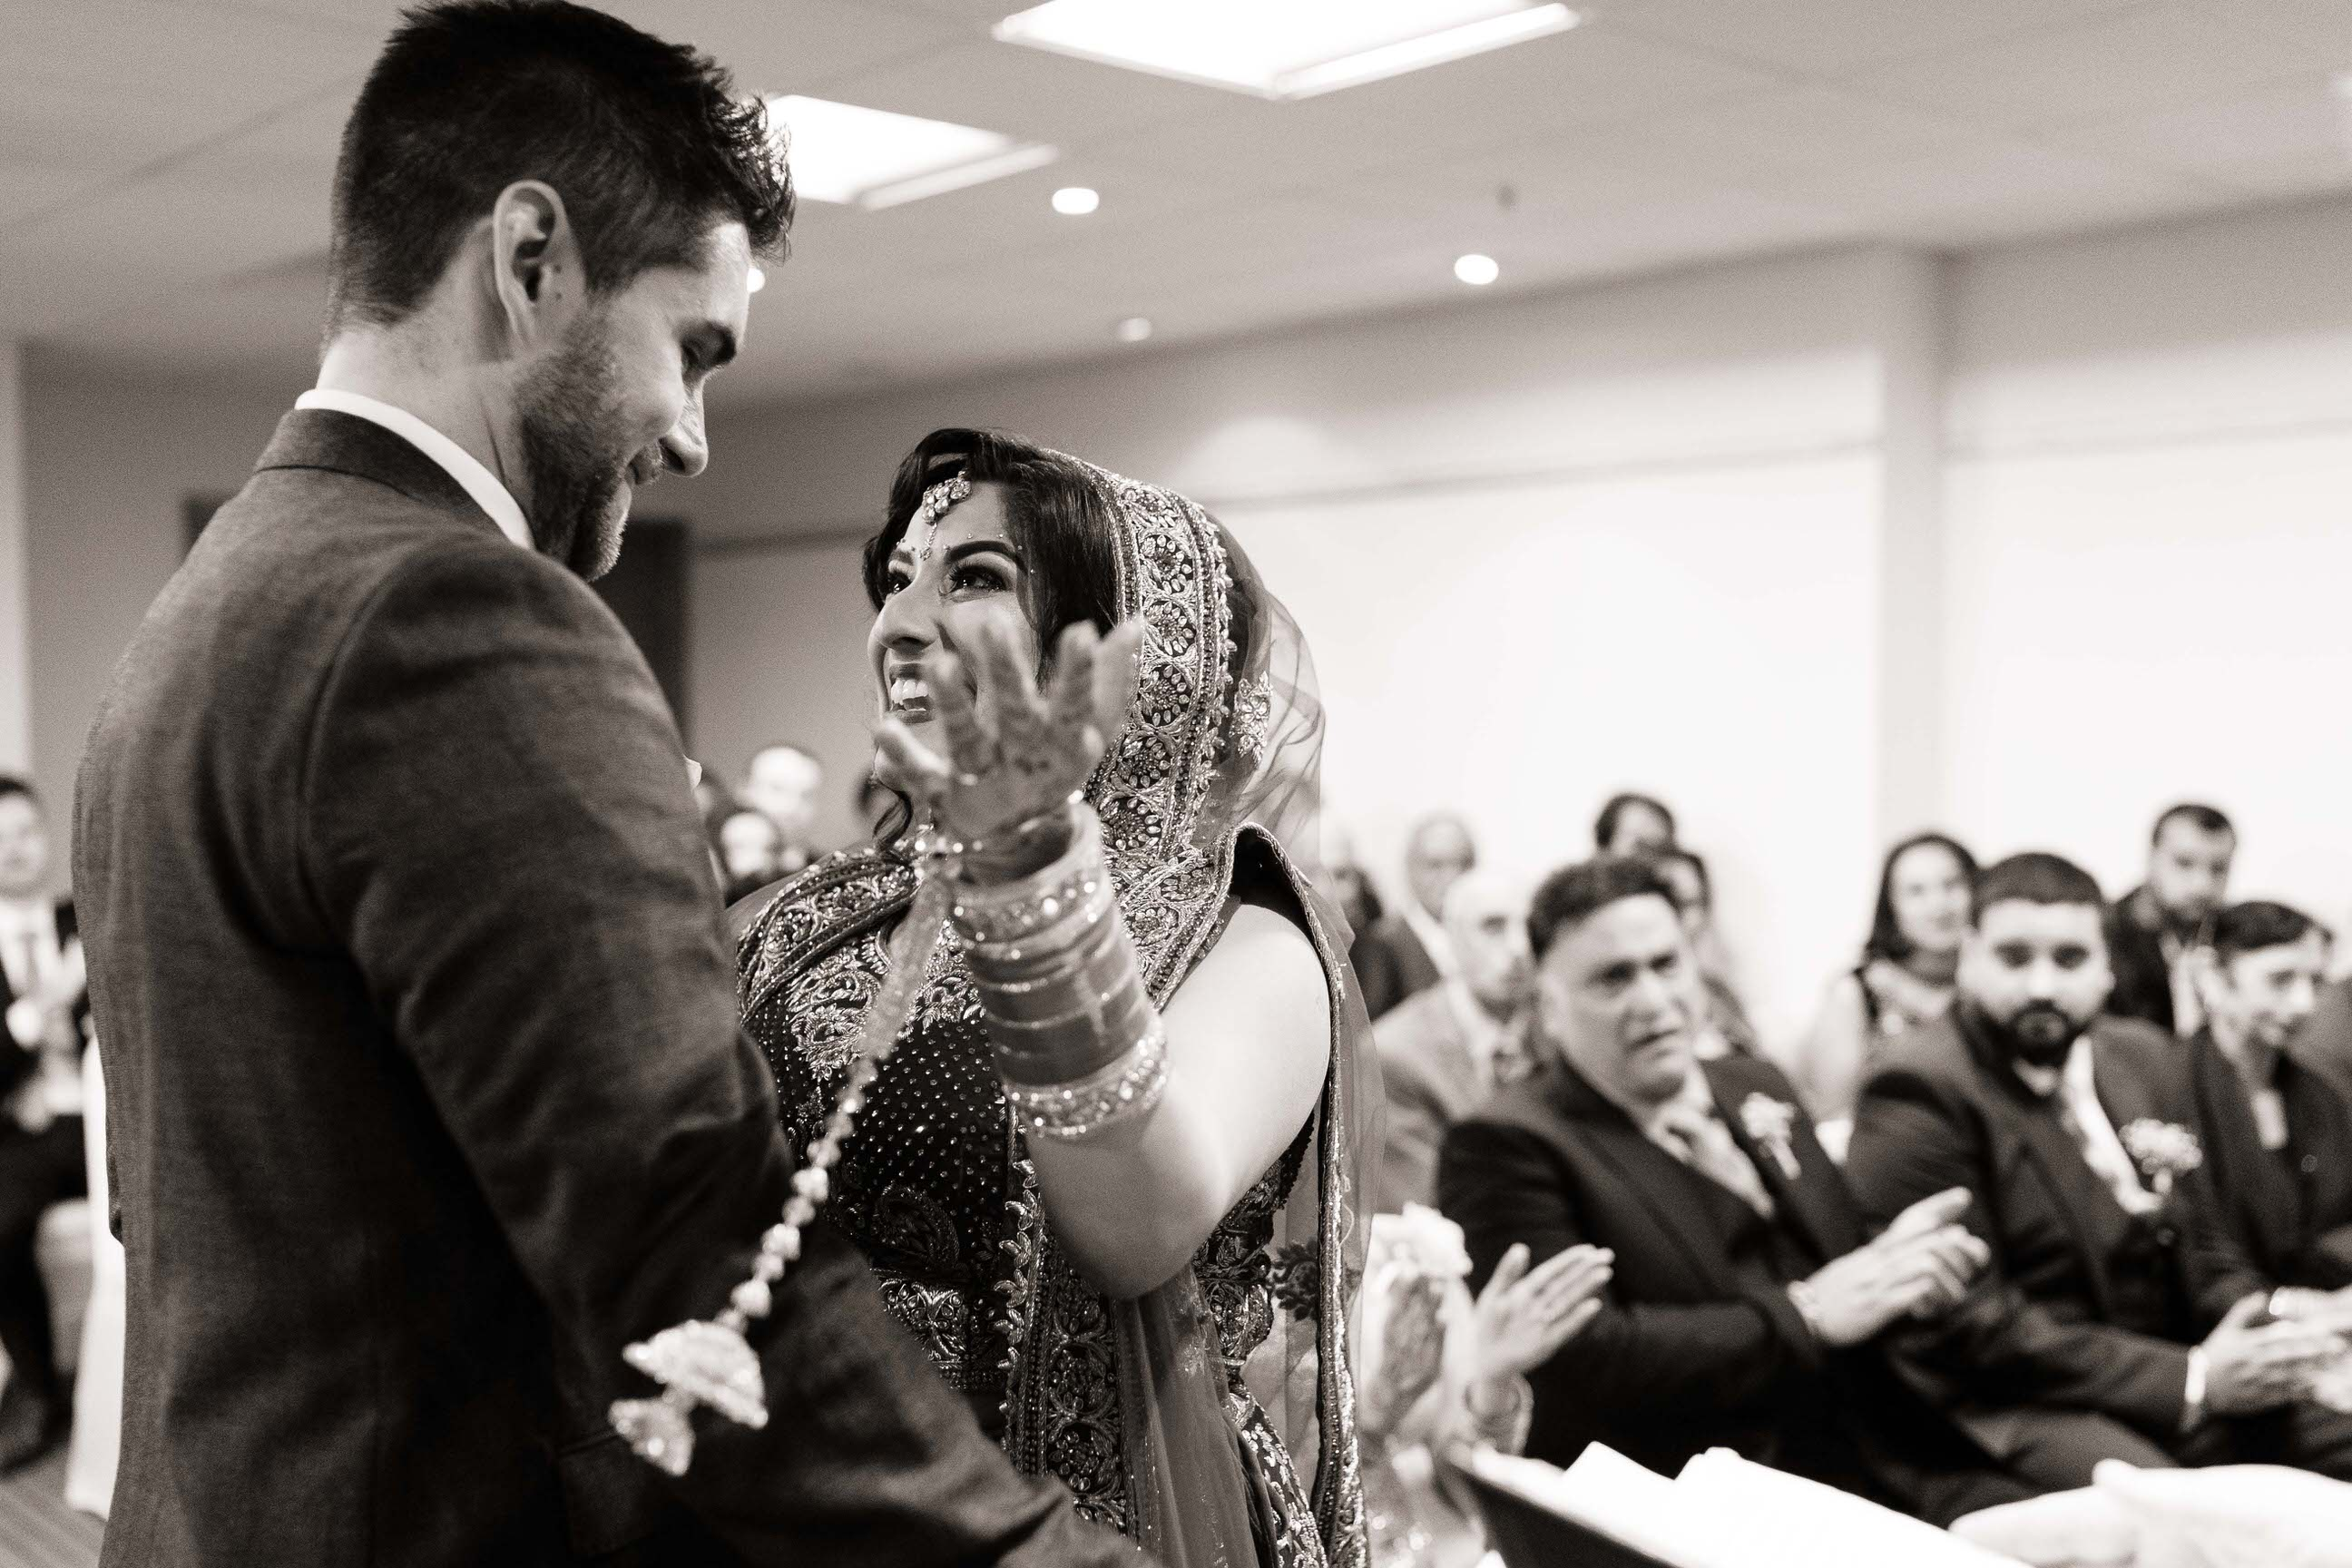 Best Wedding photographer Nottingham - bride looking happy at the news that they are now married